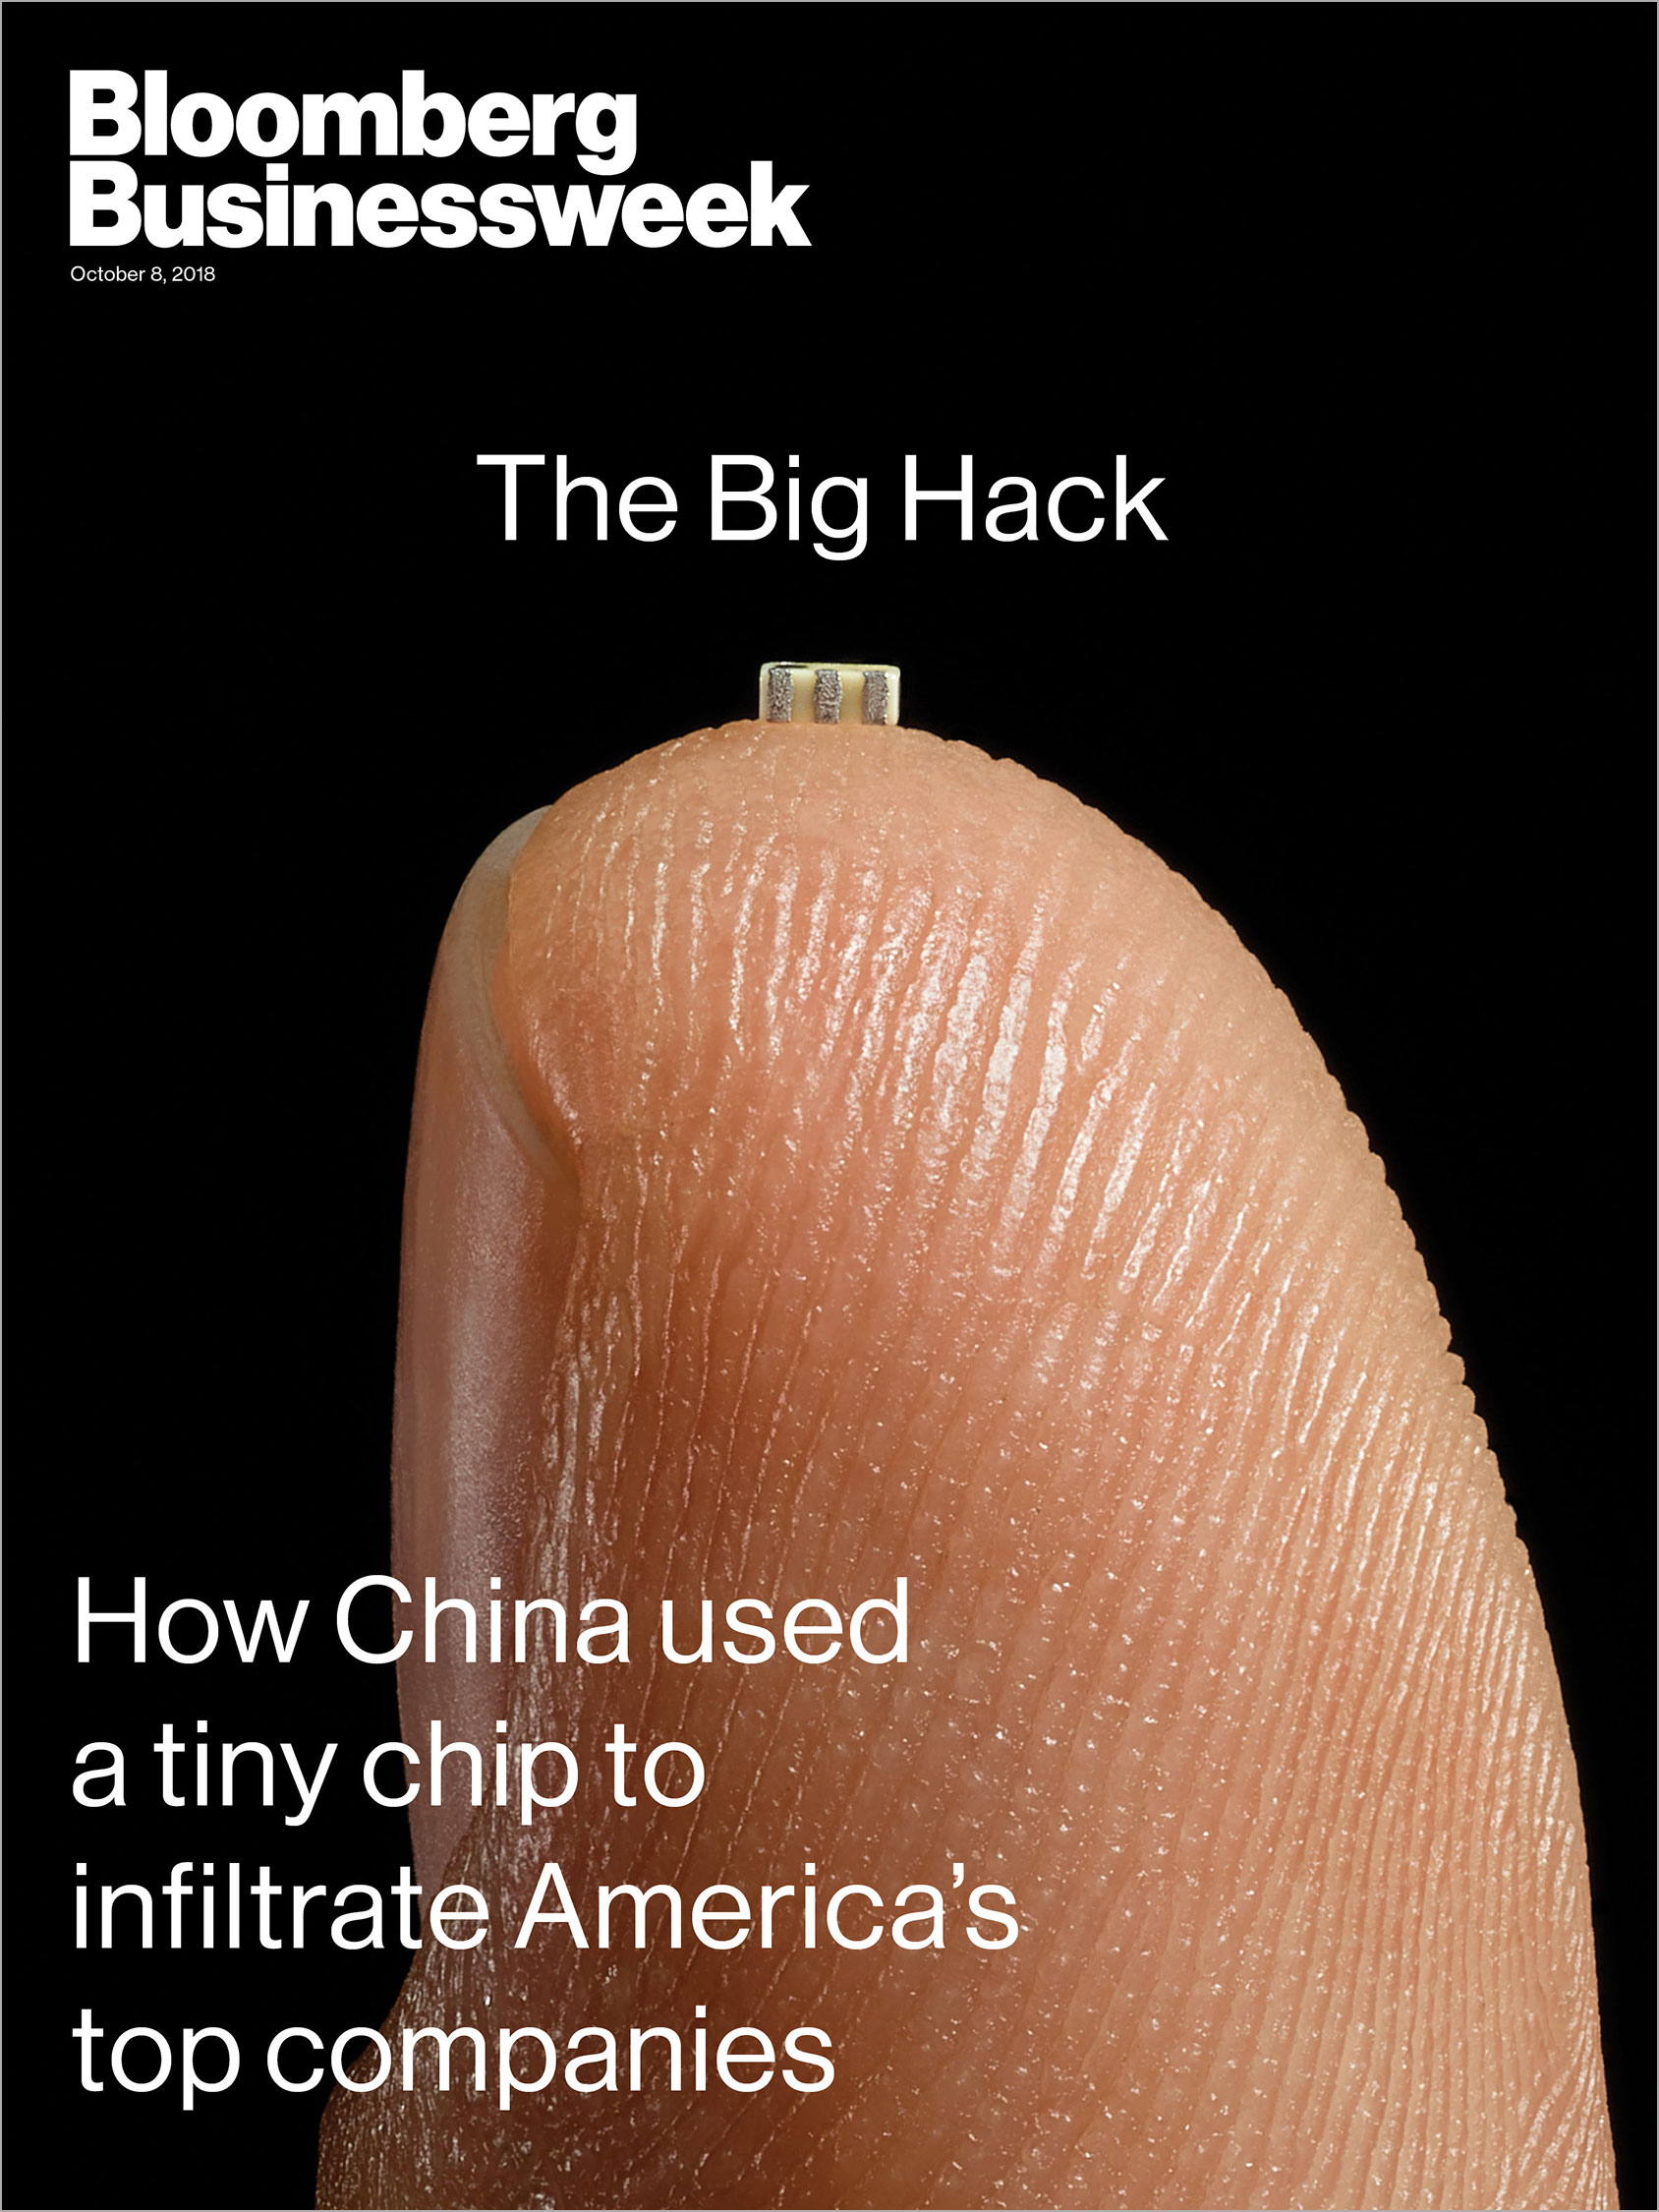 Bloomberg Businessweek - Cover Story 'The Big Hack'